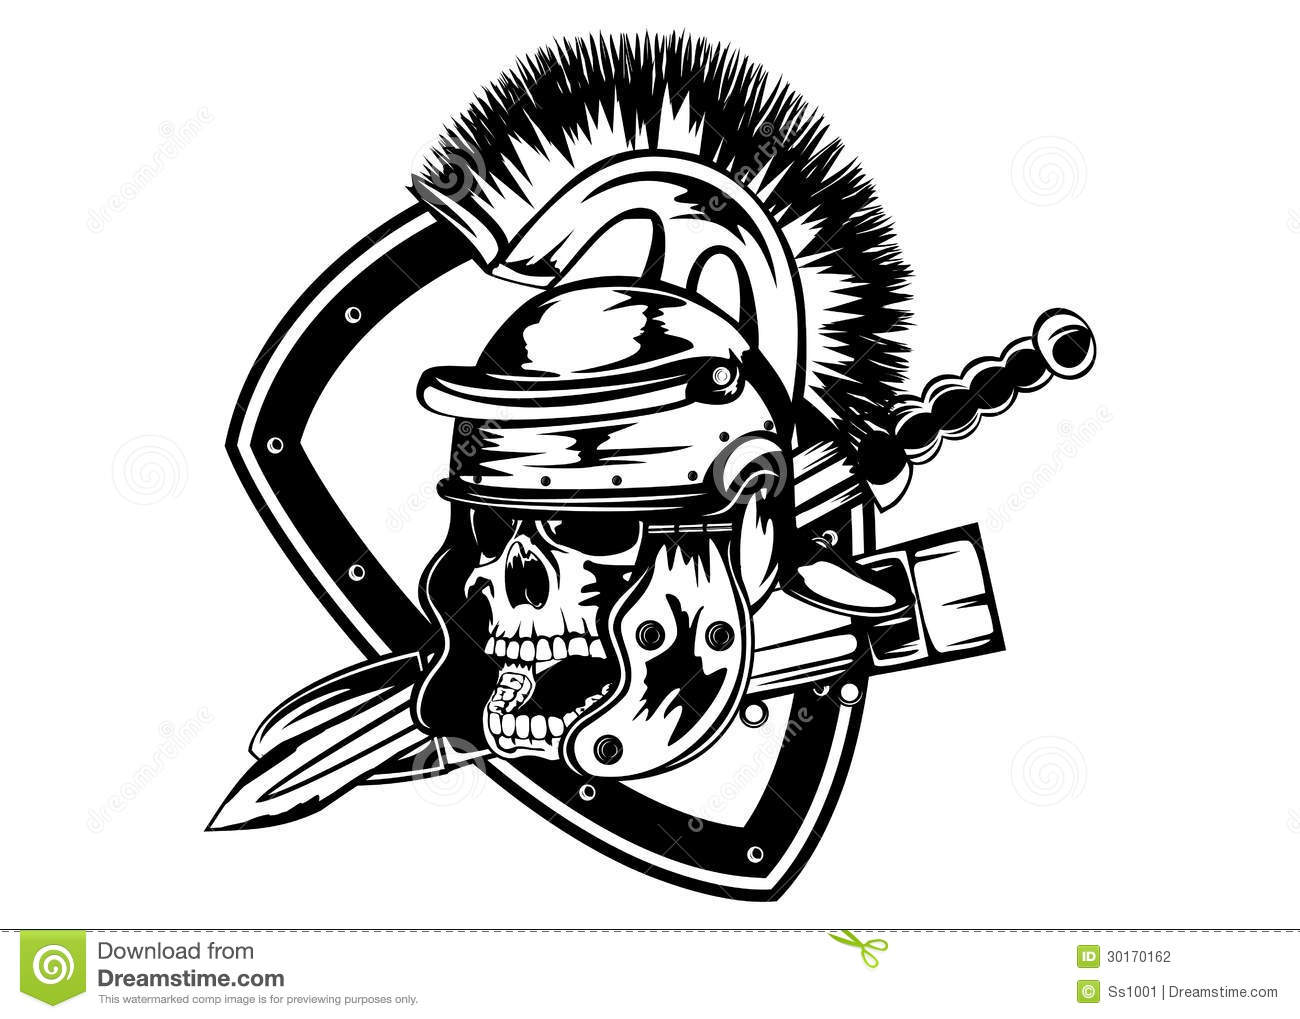 Music Notes Tattoo Designs besides Stock Photography Vector Illustration Skull Legionary Helmet Sword Image30170162 furthermore Collectioncdwn Cute Doodle Art Designs likewise Cool Skateboarding Drawings as well Stock Illustration Set Of Vintage Surfing And. on vintage skateboard illustration